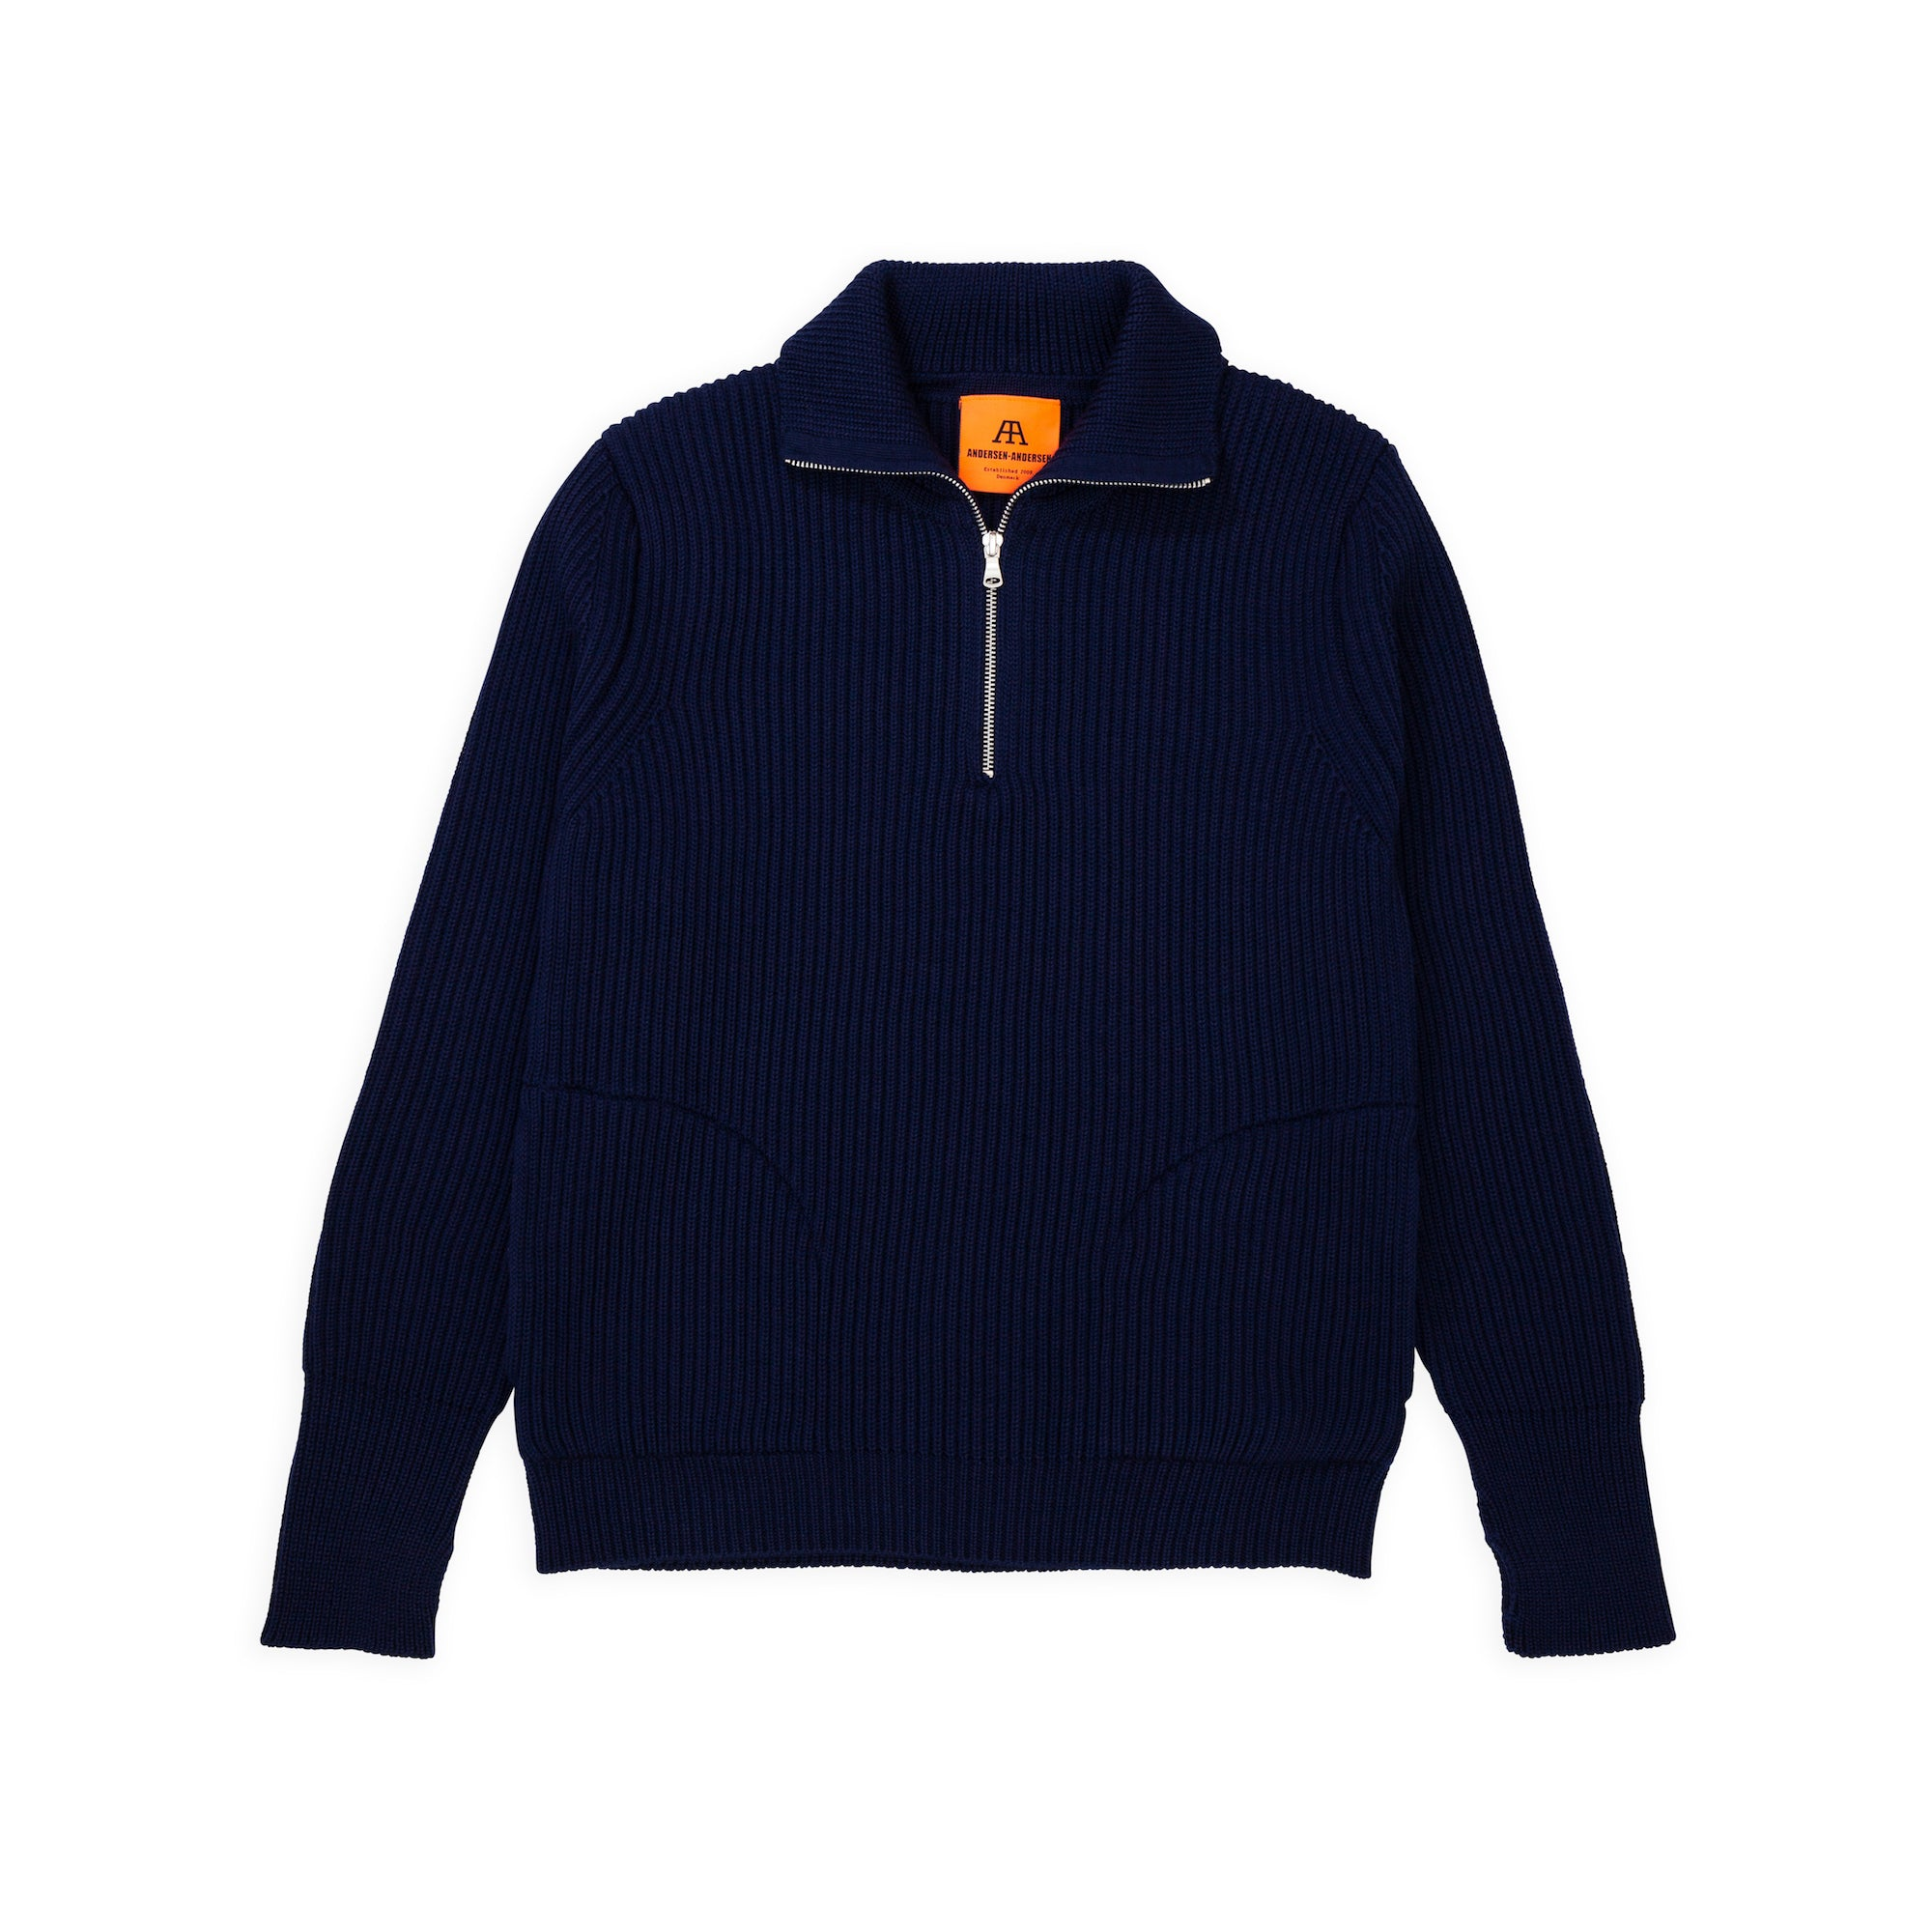 Navy Half-Zip Pockets - Royal Blue